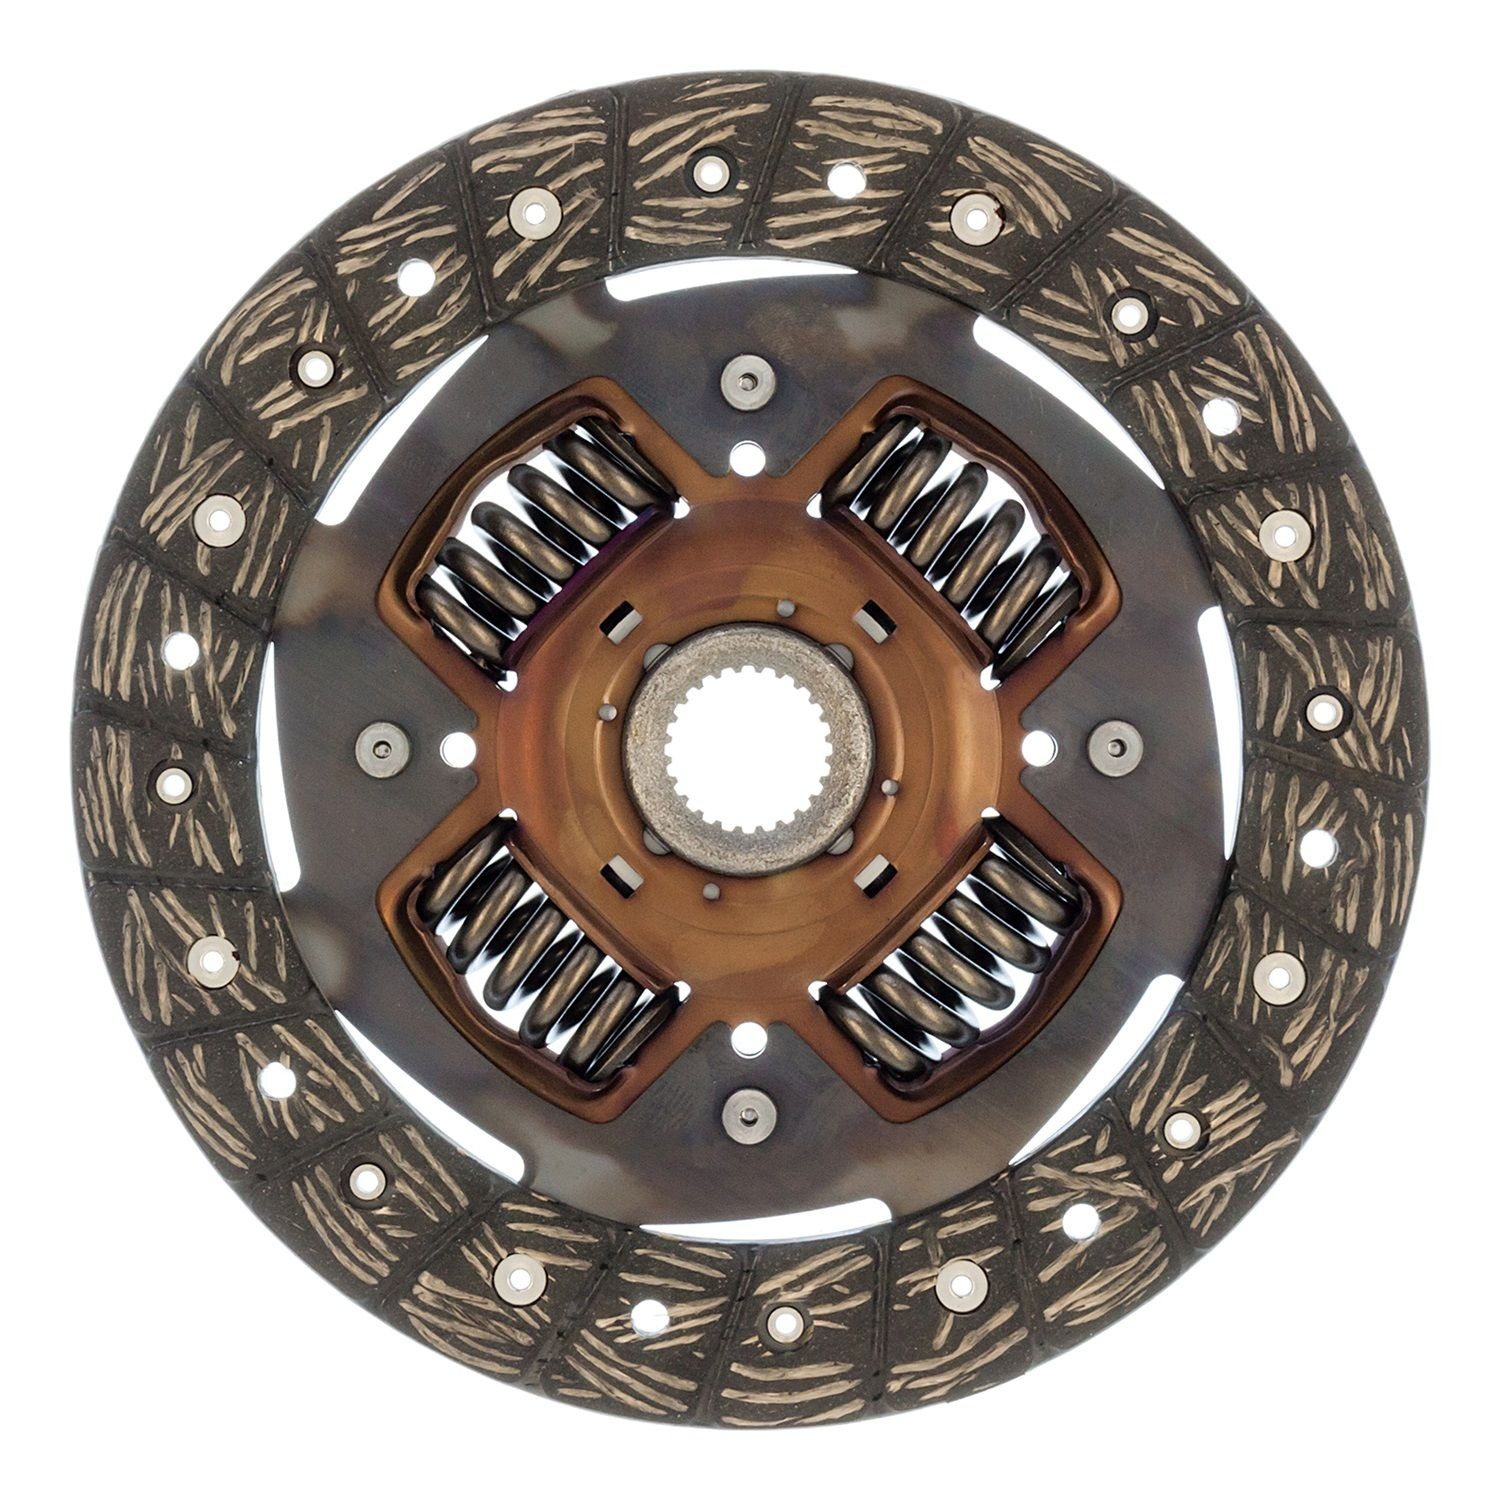 Acura RSX Clutch Kit Replacement Beck Arnley Exedy LuK Rhino Pac